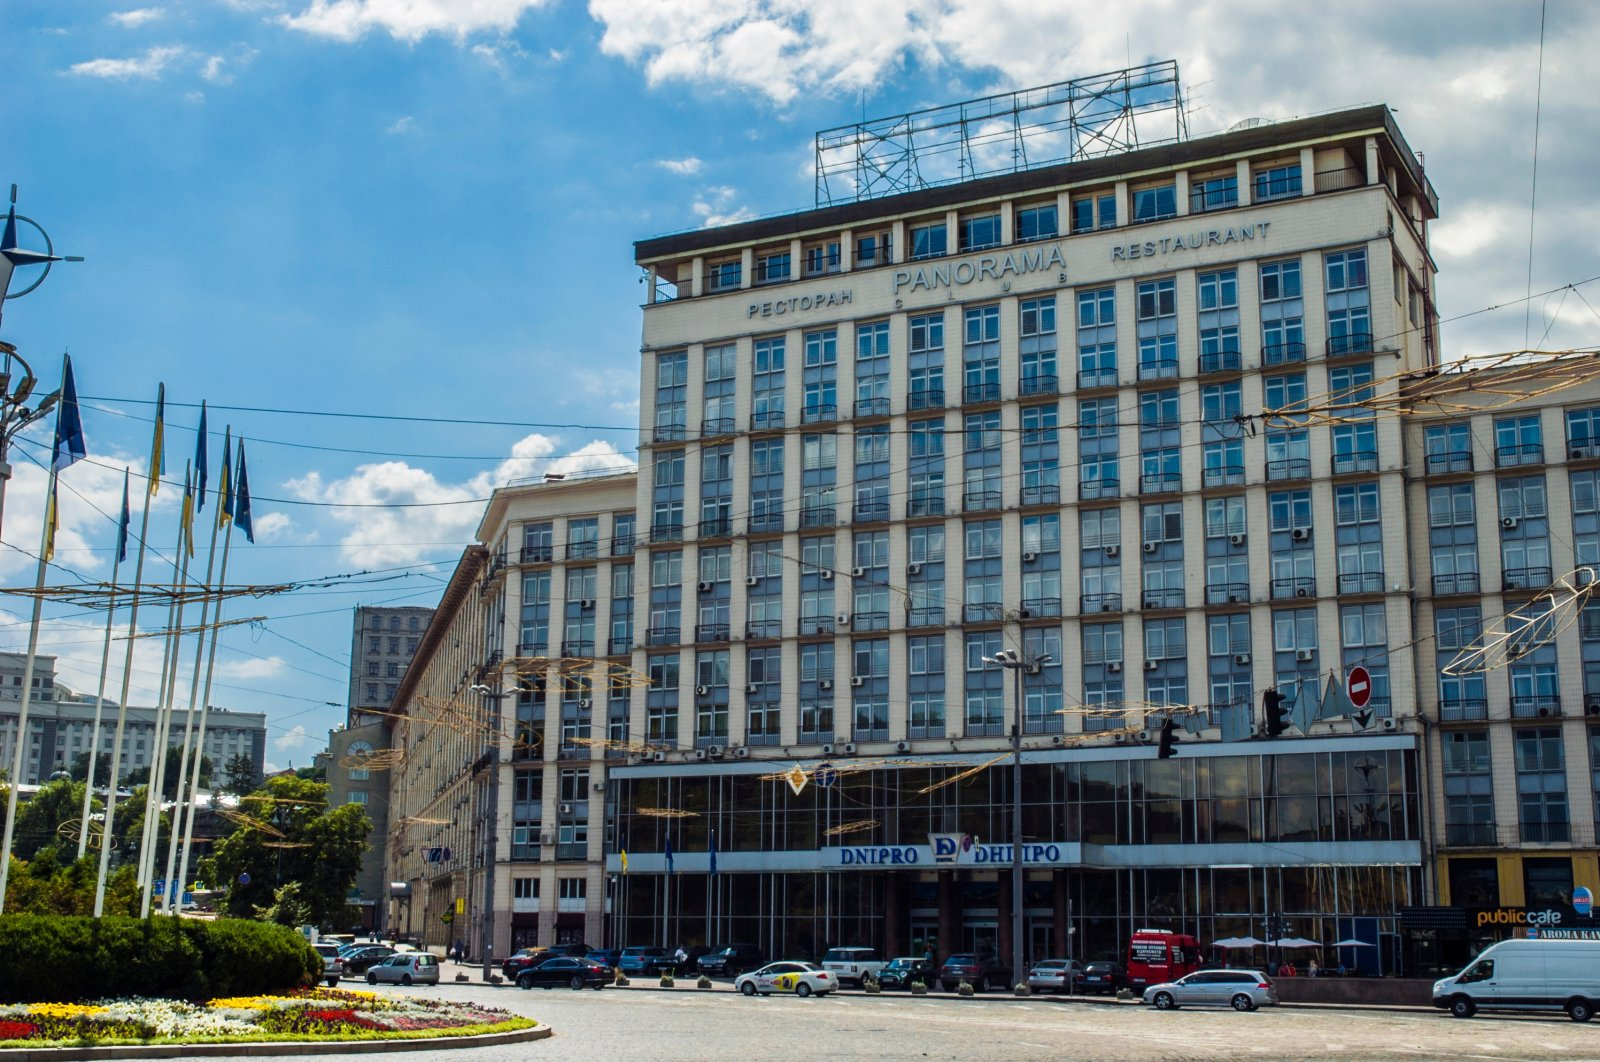 Kyiv's Hotel Dnipro which sold through an auction in a privatization campaign, Kyiv, Ukraine, July 21, 2020. (Shutterstock Photo)